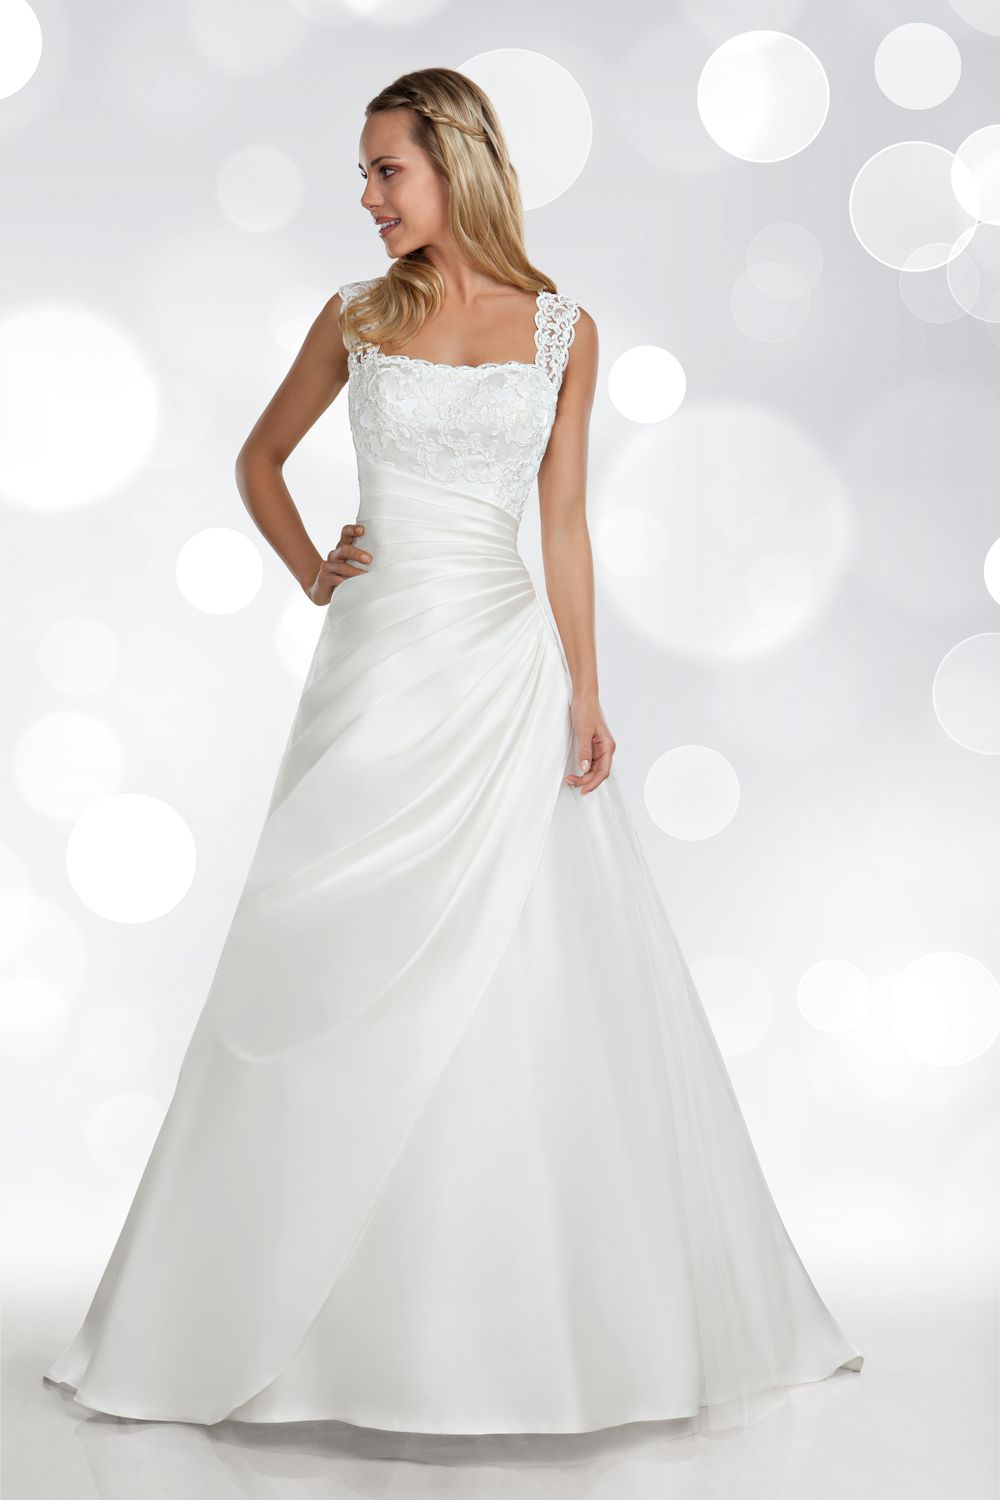 Confetti And Lace Are A Specialist Wedding Shop Based In Stanningley Leeds We Sell Bridal Gowns B Wedding Dress Necklines Ball Gowns Wedding Wedding Dresses